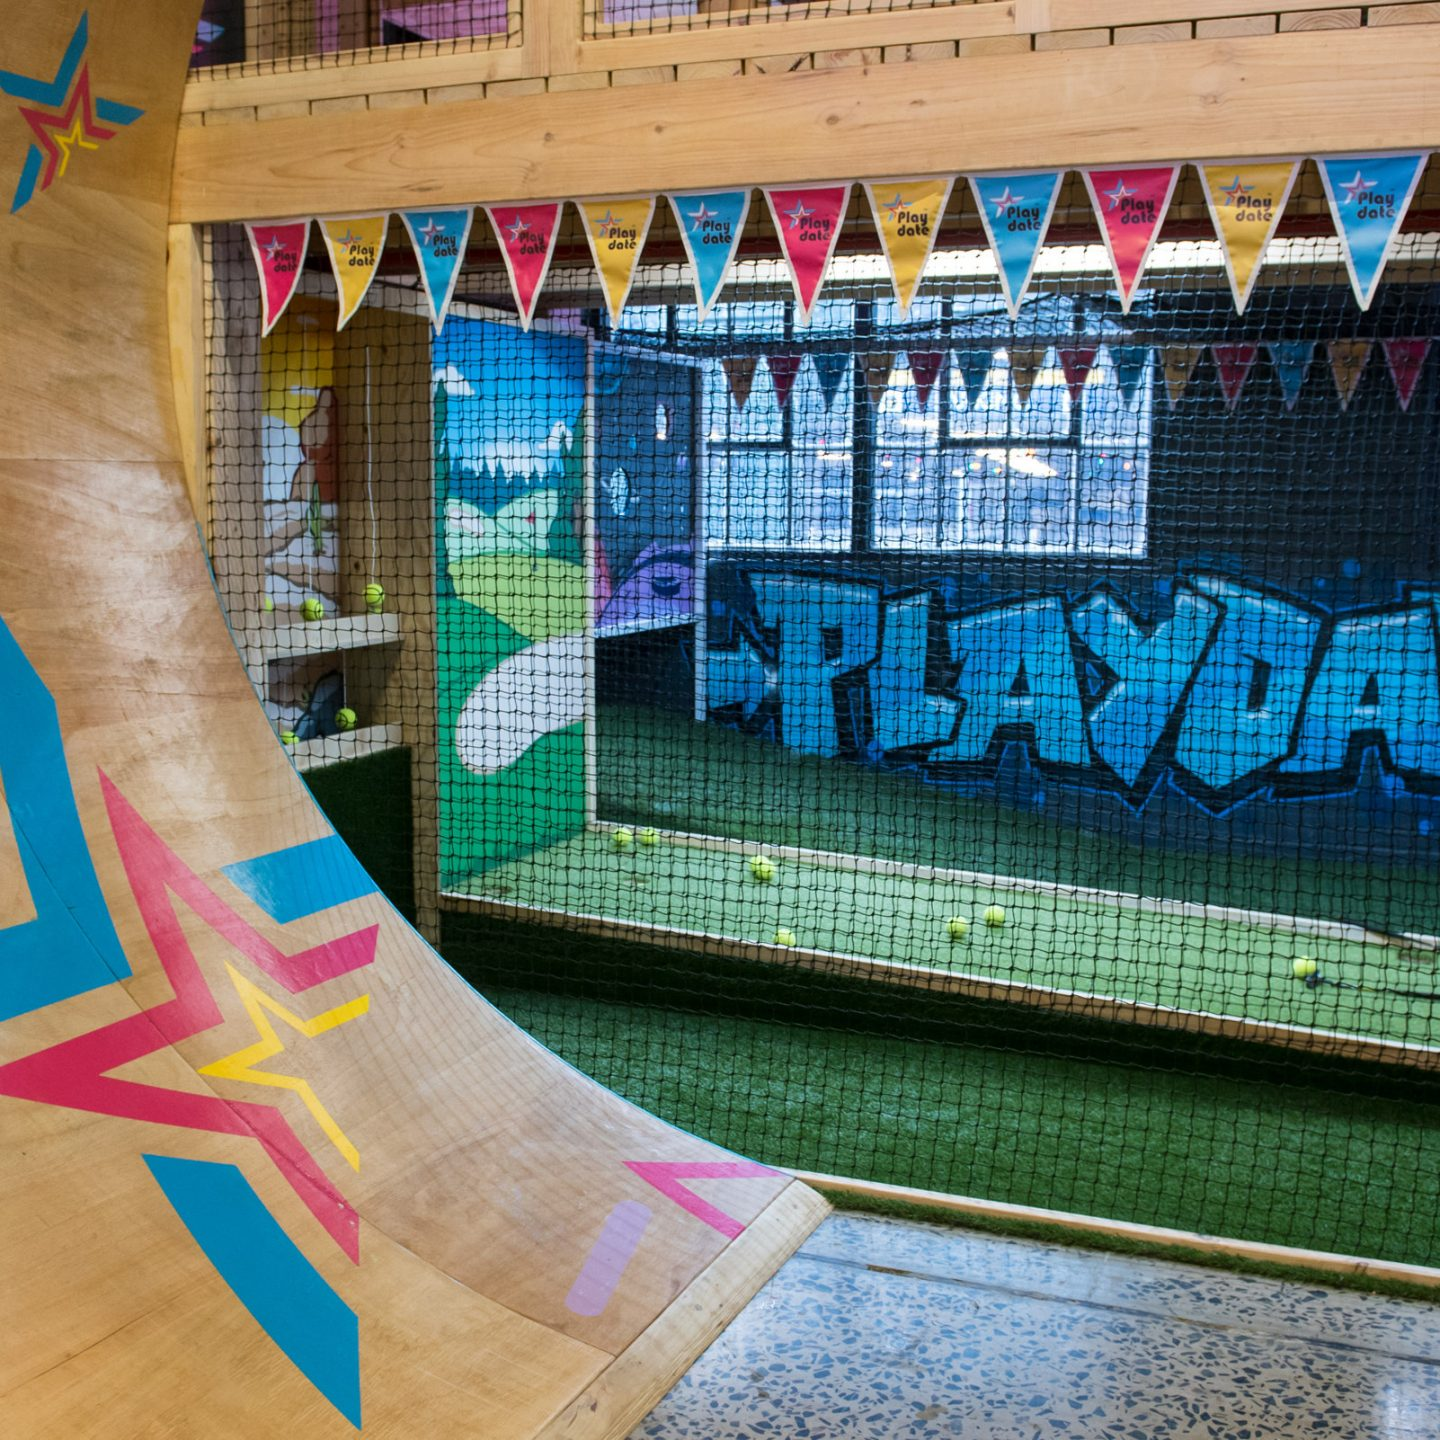 Win 4 x All Day Passes at Playdate SuperPark and R1000 V&A Gift Card!